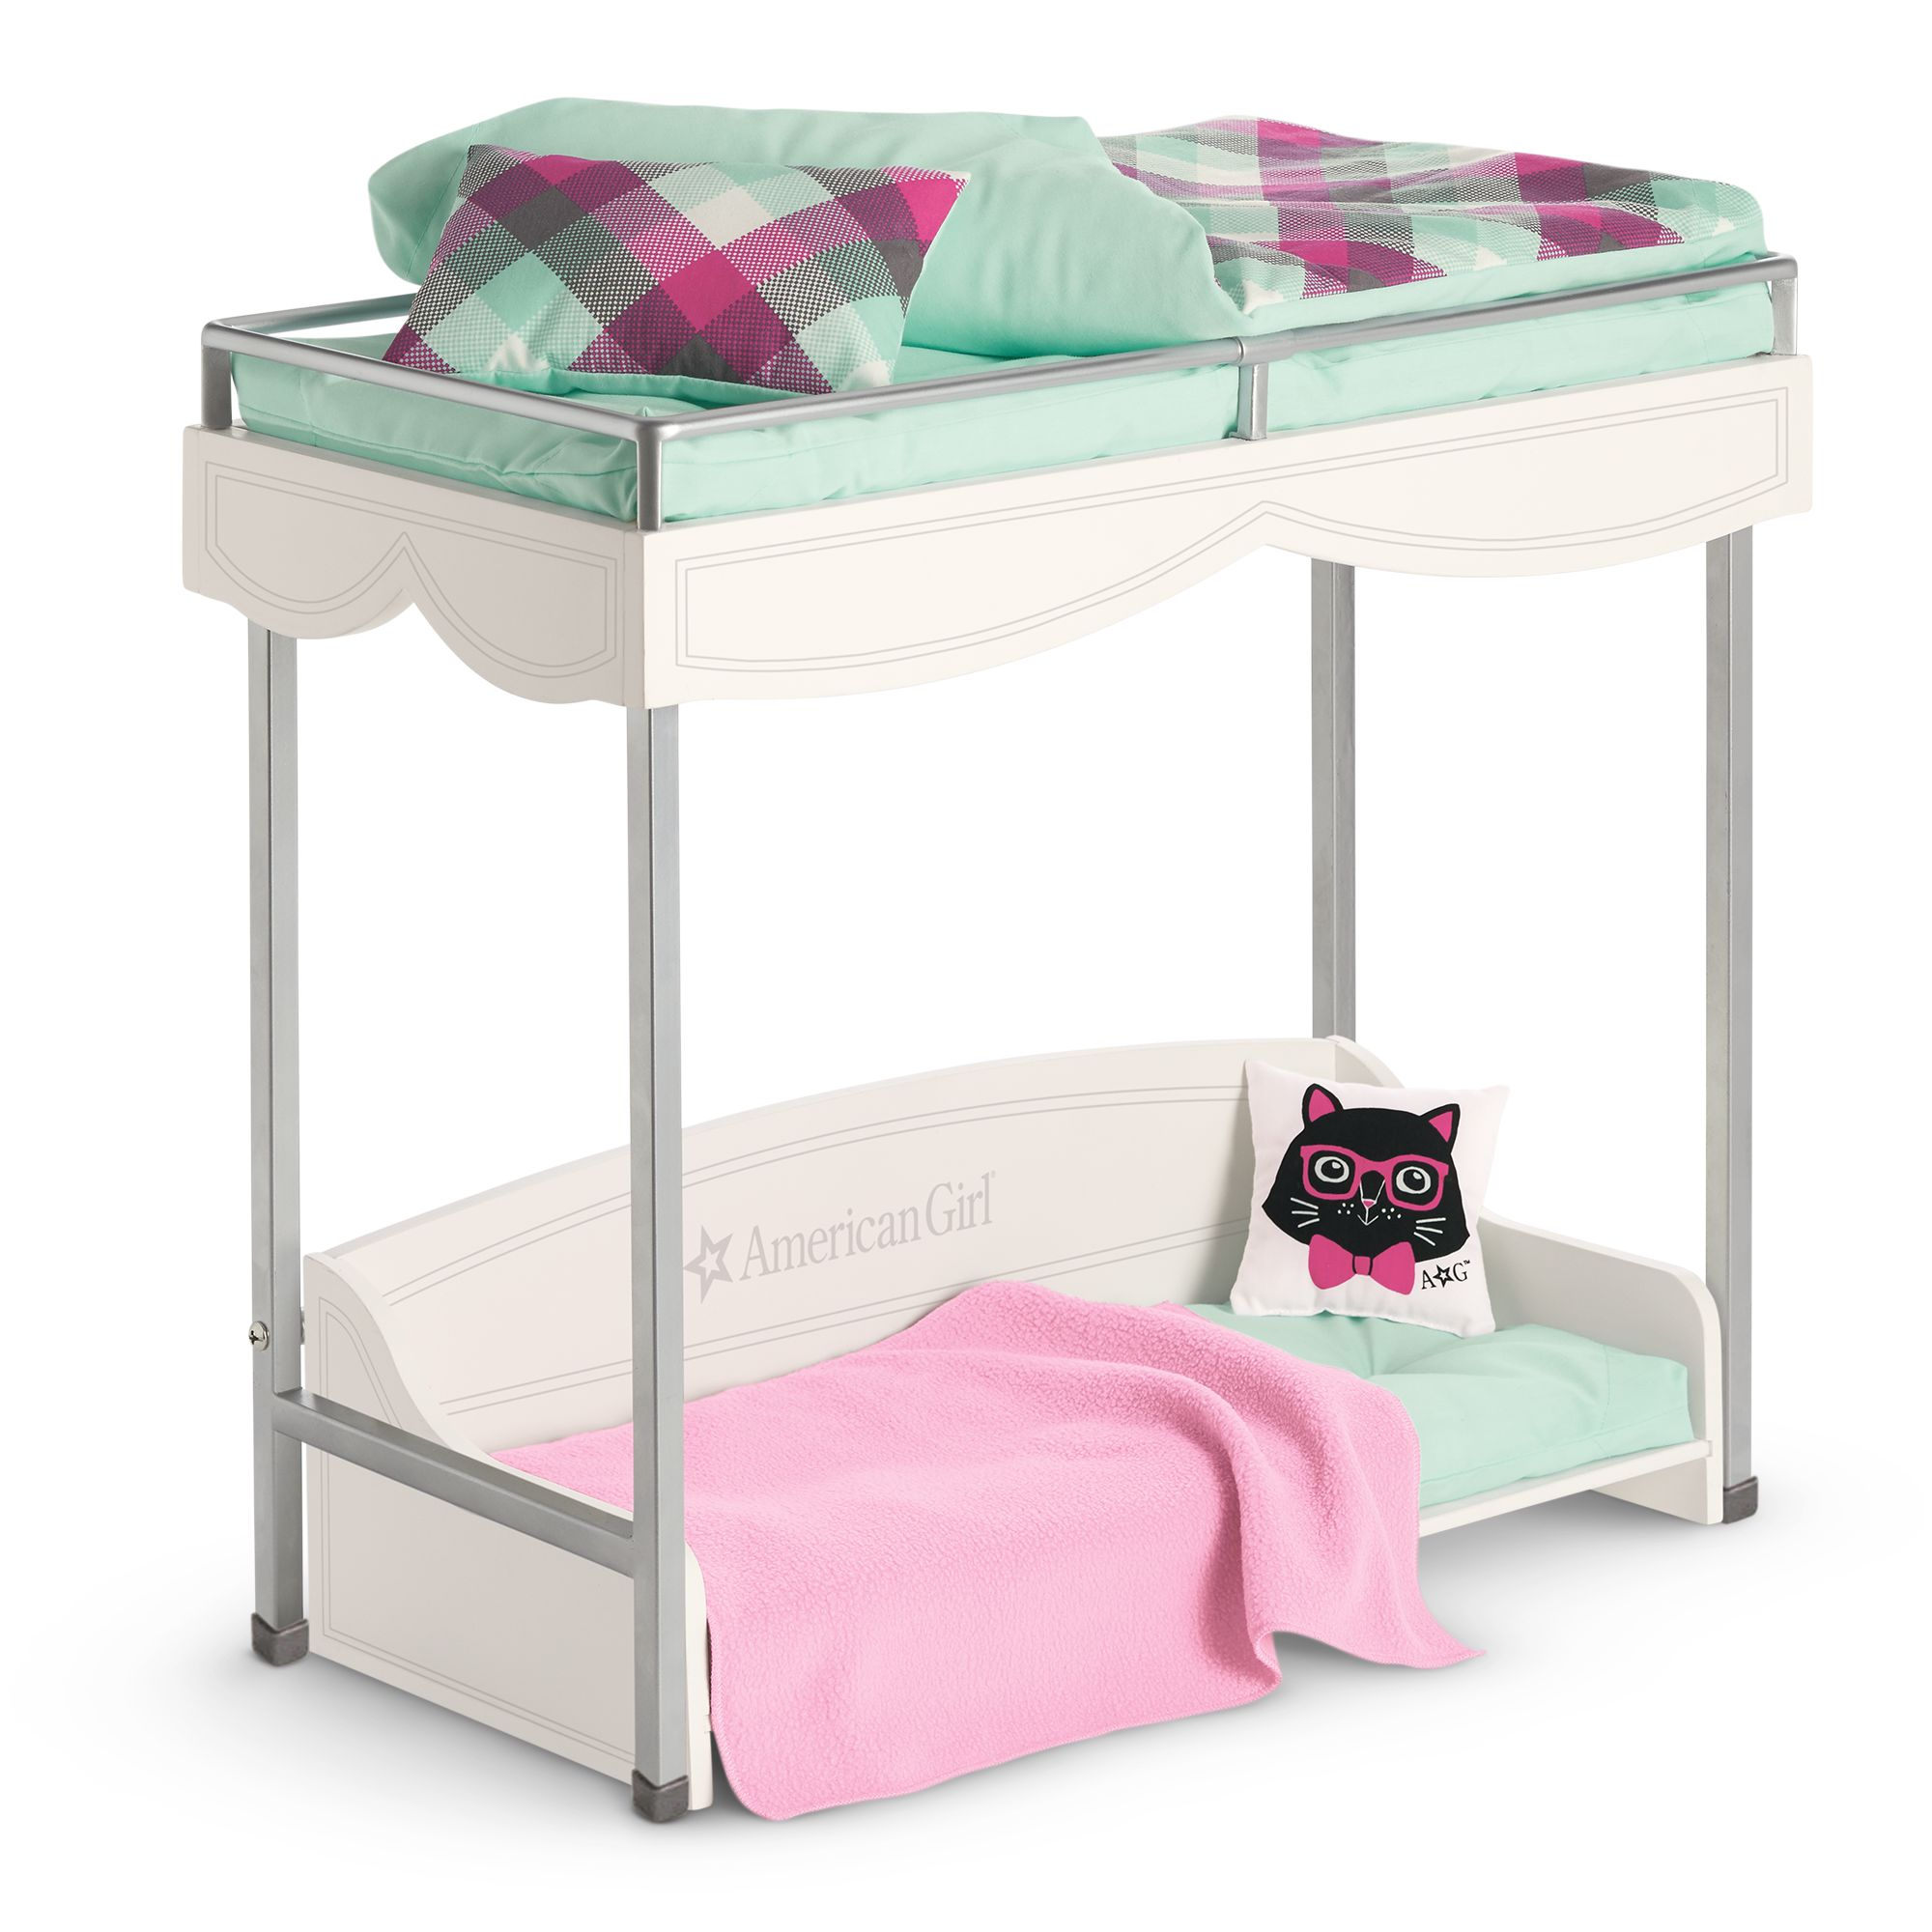 Bunk Bed and Bedding